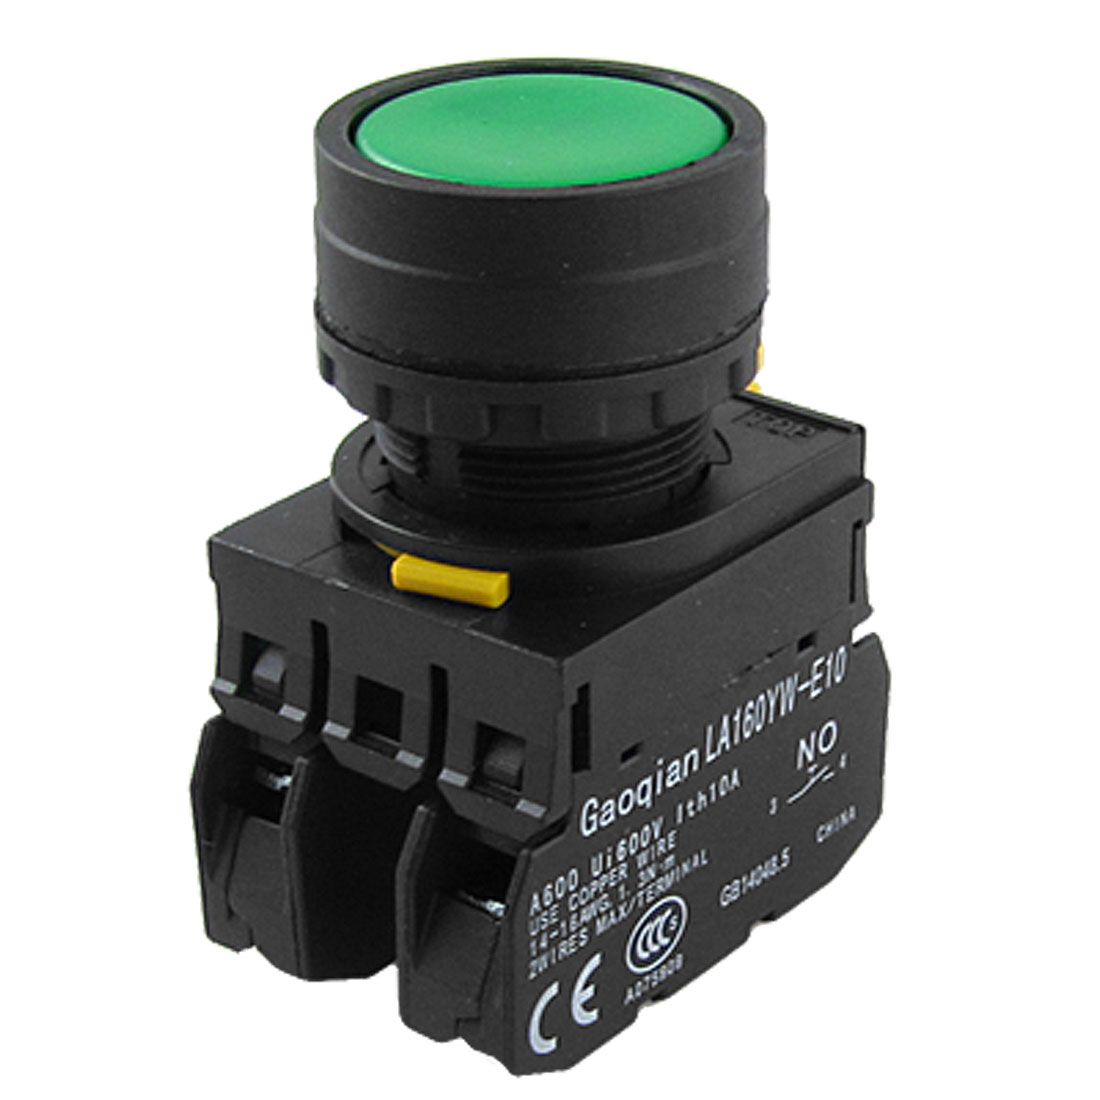 AC 600V 10A Green Sign Ignition Momentary Push Button Switch 1 NO N/O 1 NC N/C